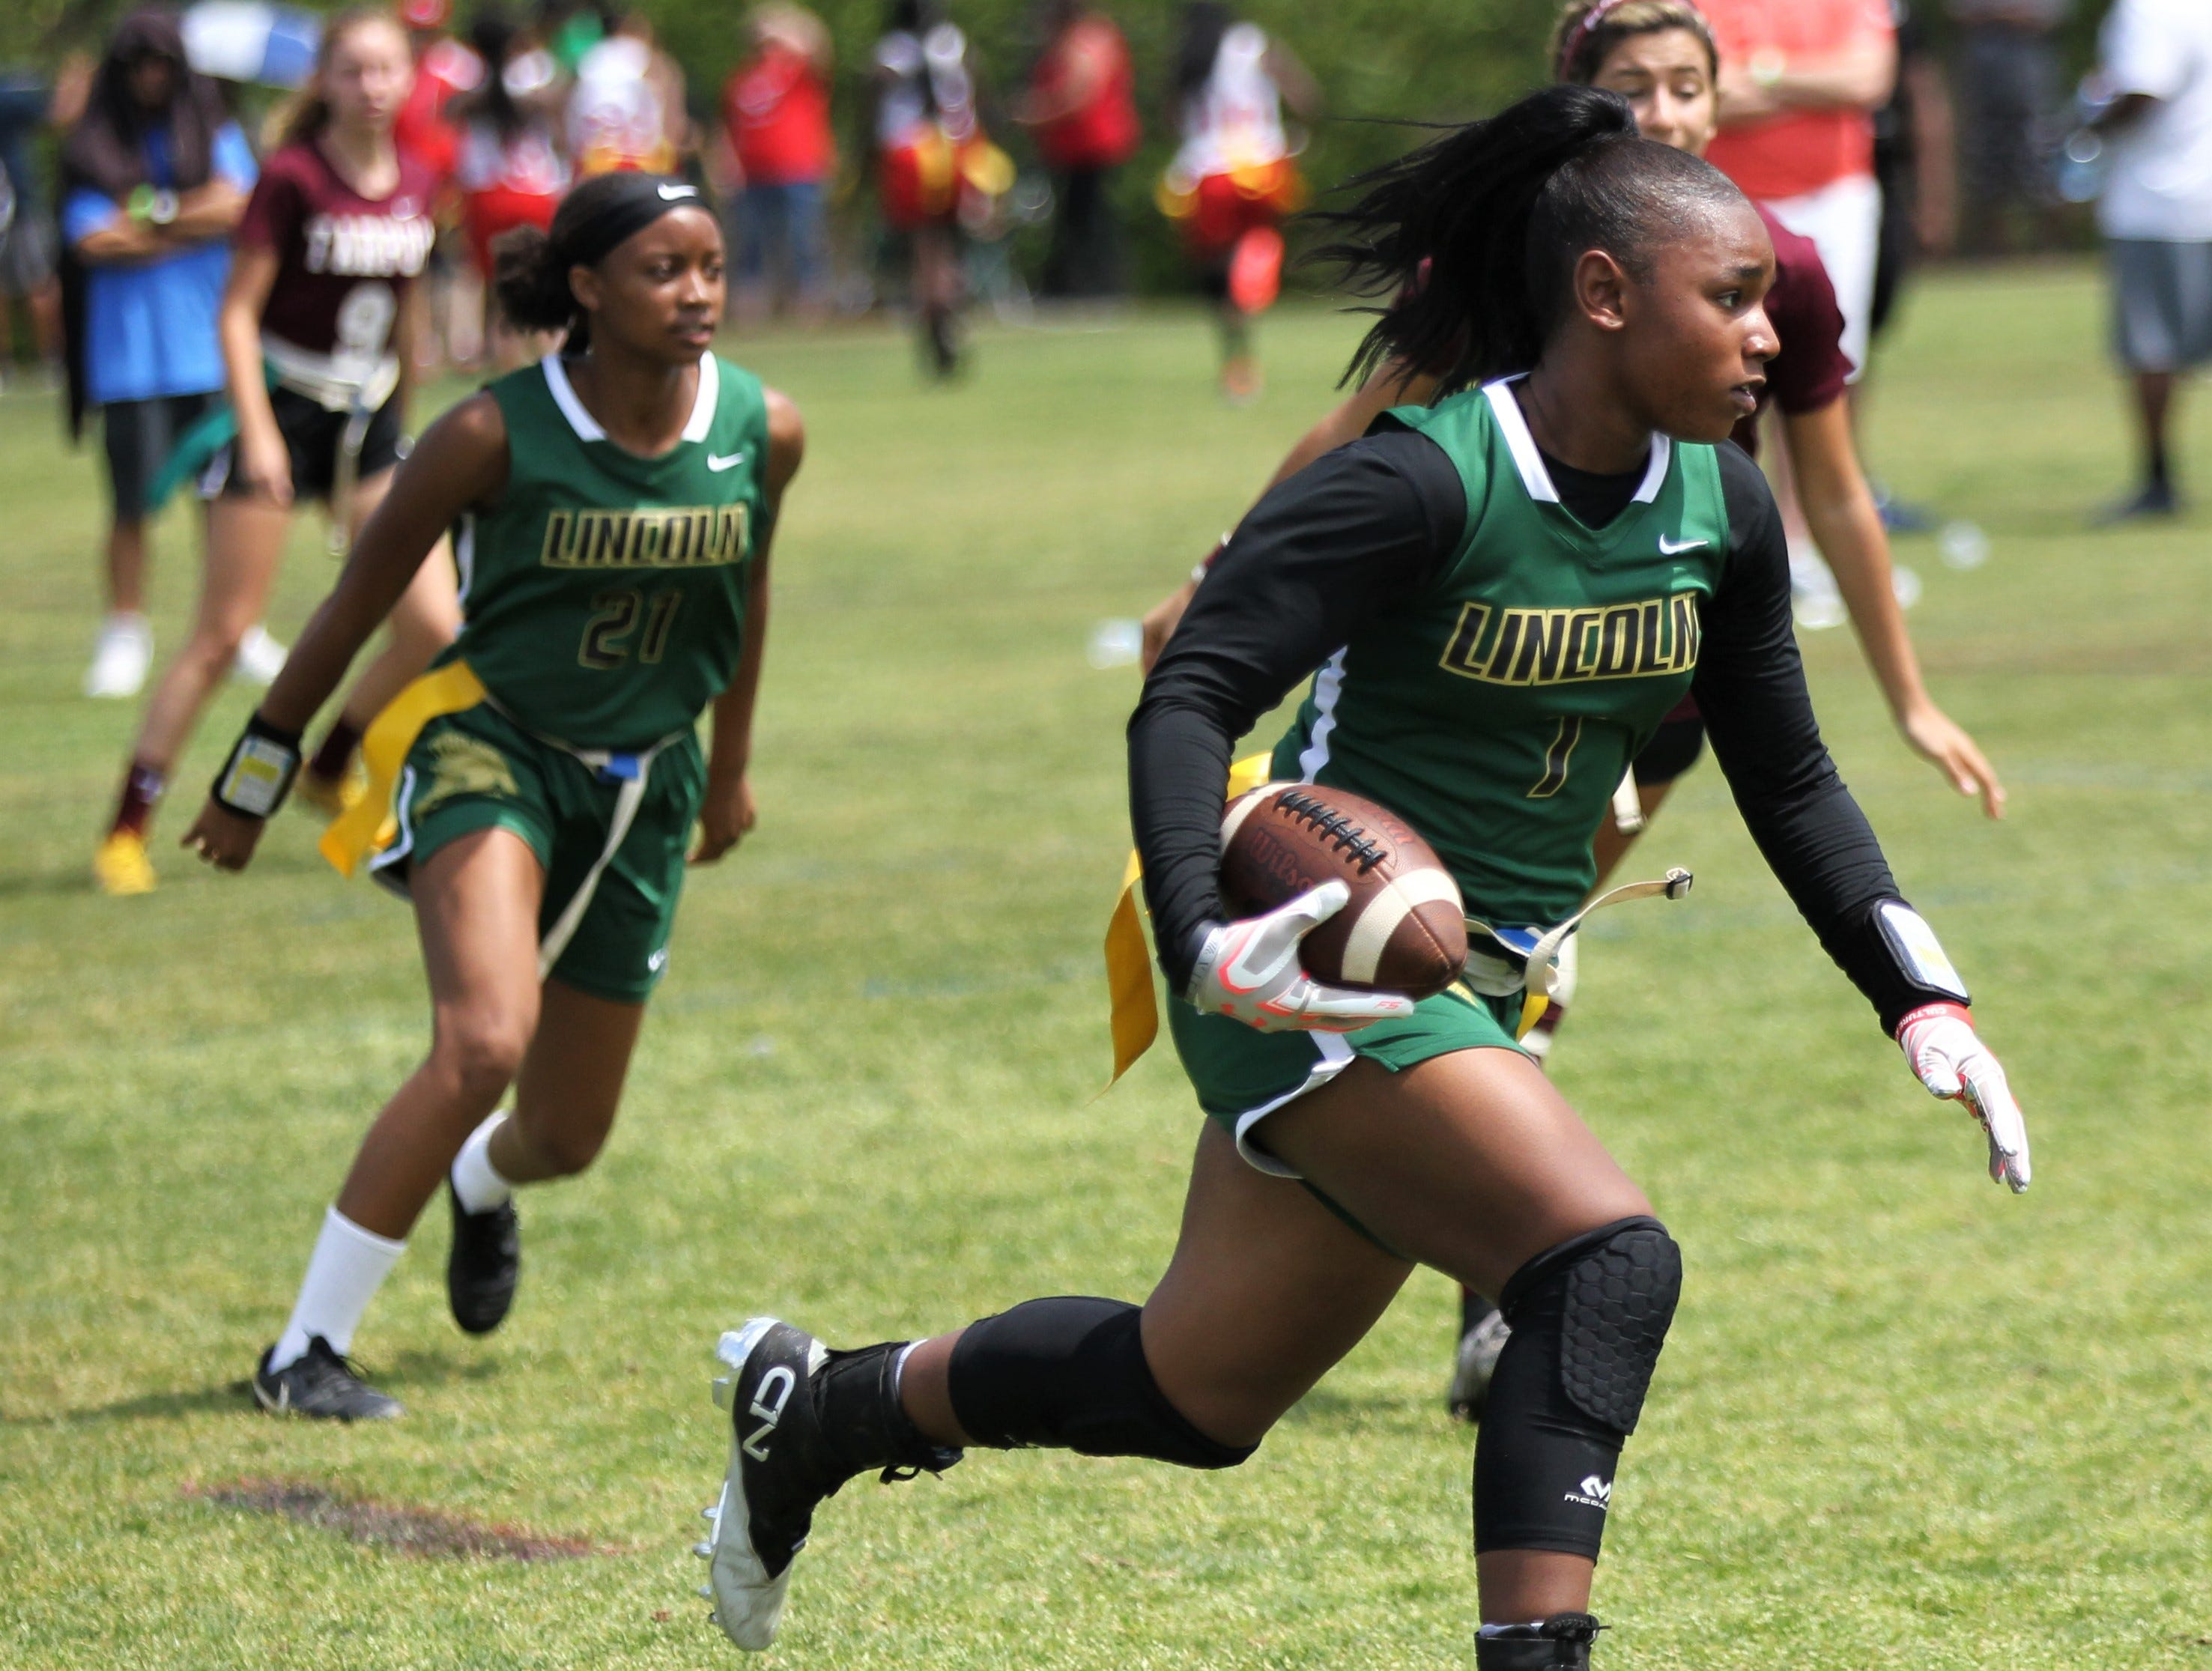 Lincoln's Erin Turral runs for a long touchdown against Tarpon Springs in the 2019 Capital City Classic flag football tournament at the FSU Rec SportsPlex on April 6, 2019.